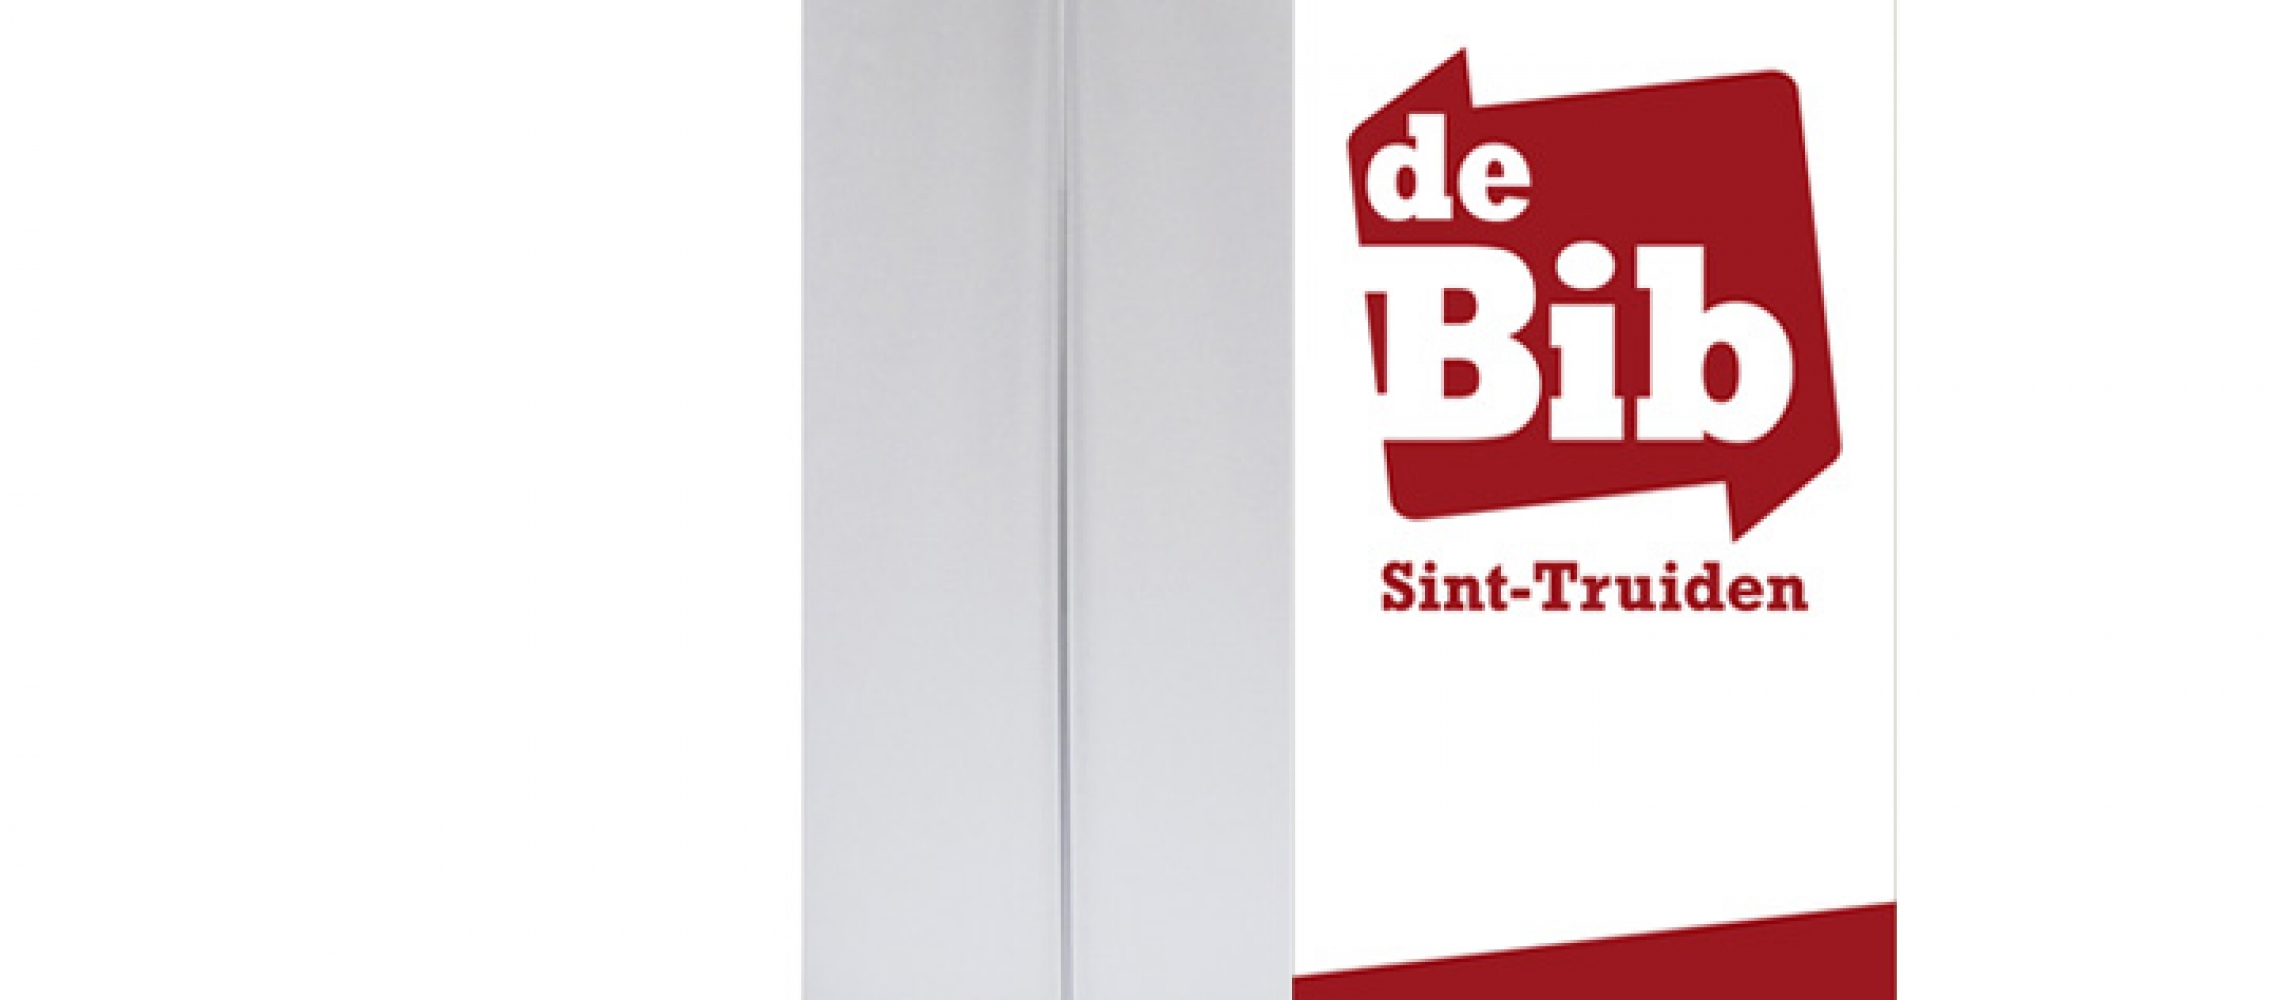 Bib Sint-Truiden Roll Up Banner